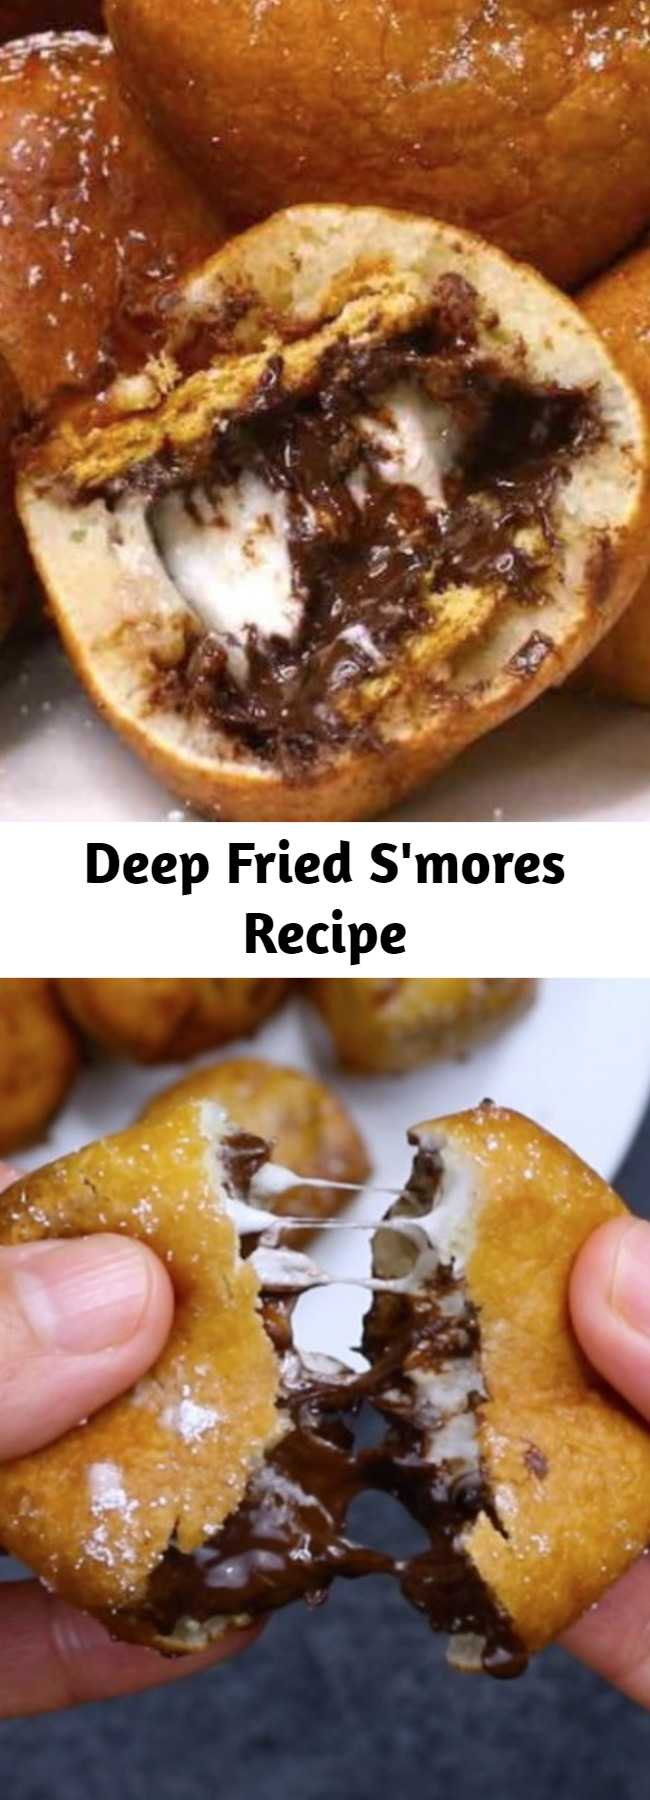 Deep Fried S'mores Recipe - These Deep Fried S'mores are golden on the outside and fluffy inside with delicious graham cracker, chocolate and marshmallow flavors. They melt in your mouth with irresistible s'mores flavors! A great dessert for a party!